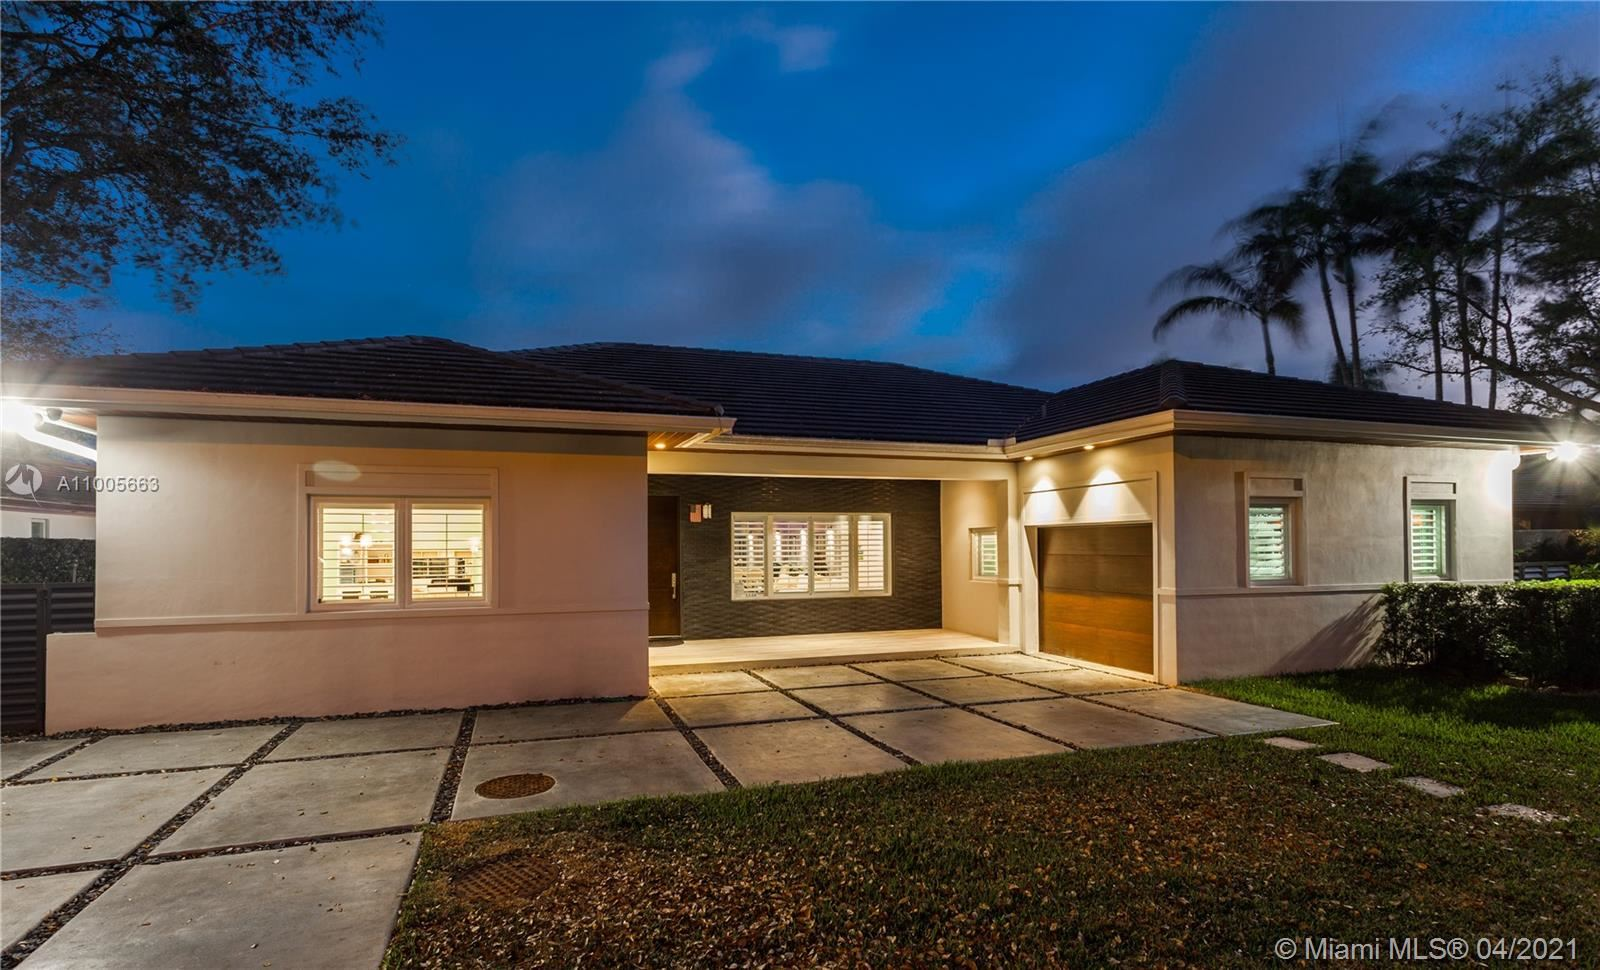 1130 Alfonso Ave, Coral Gables, FL 33146 - #: A11005663